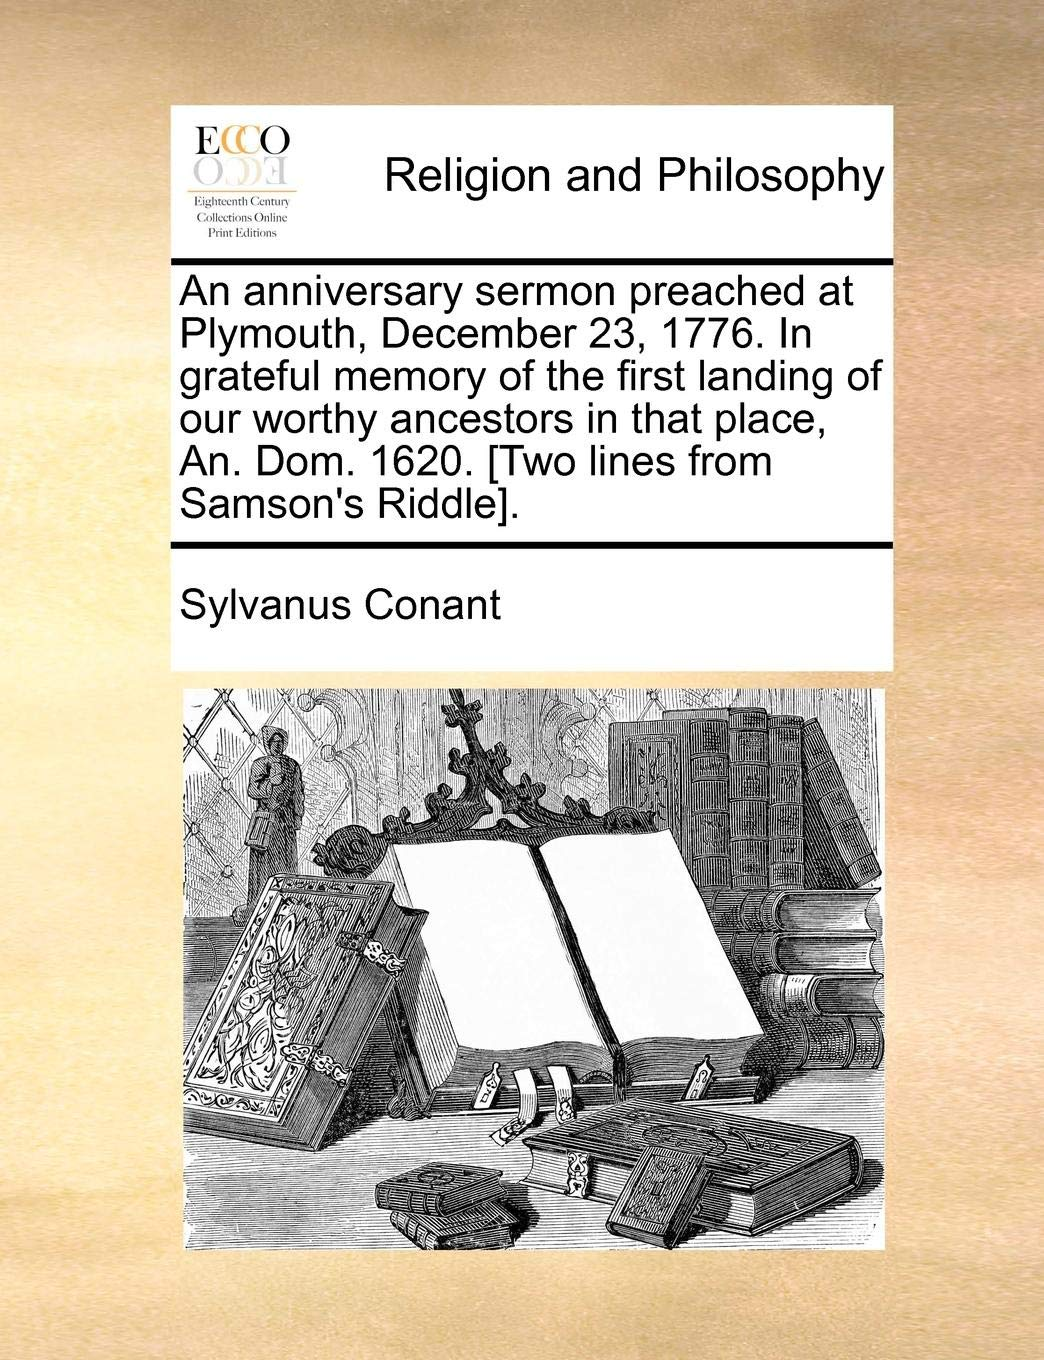 An anniversary sermon preached at Plymouth, December 23